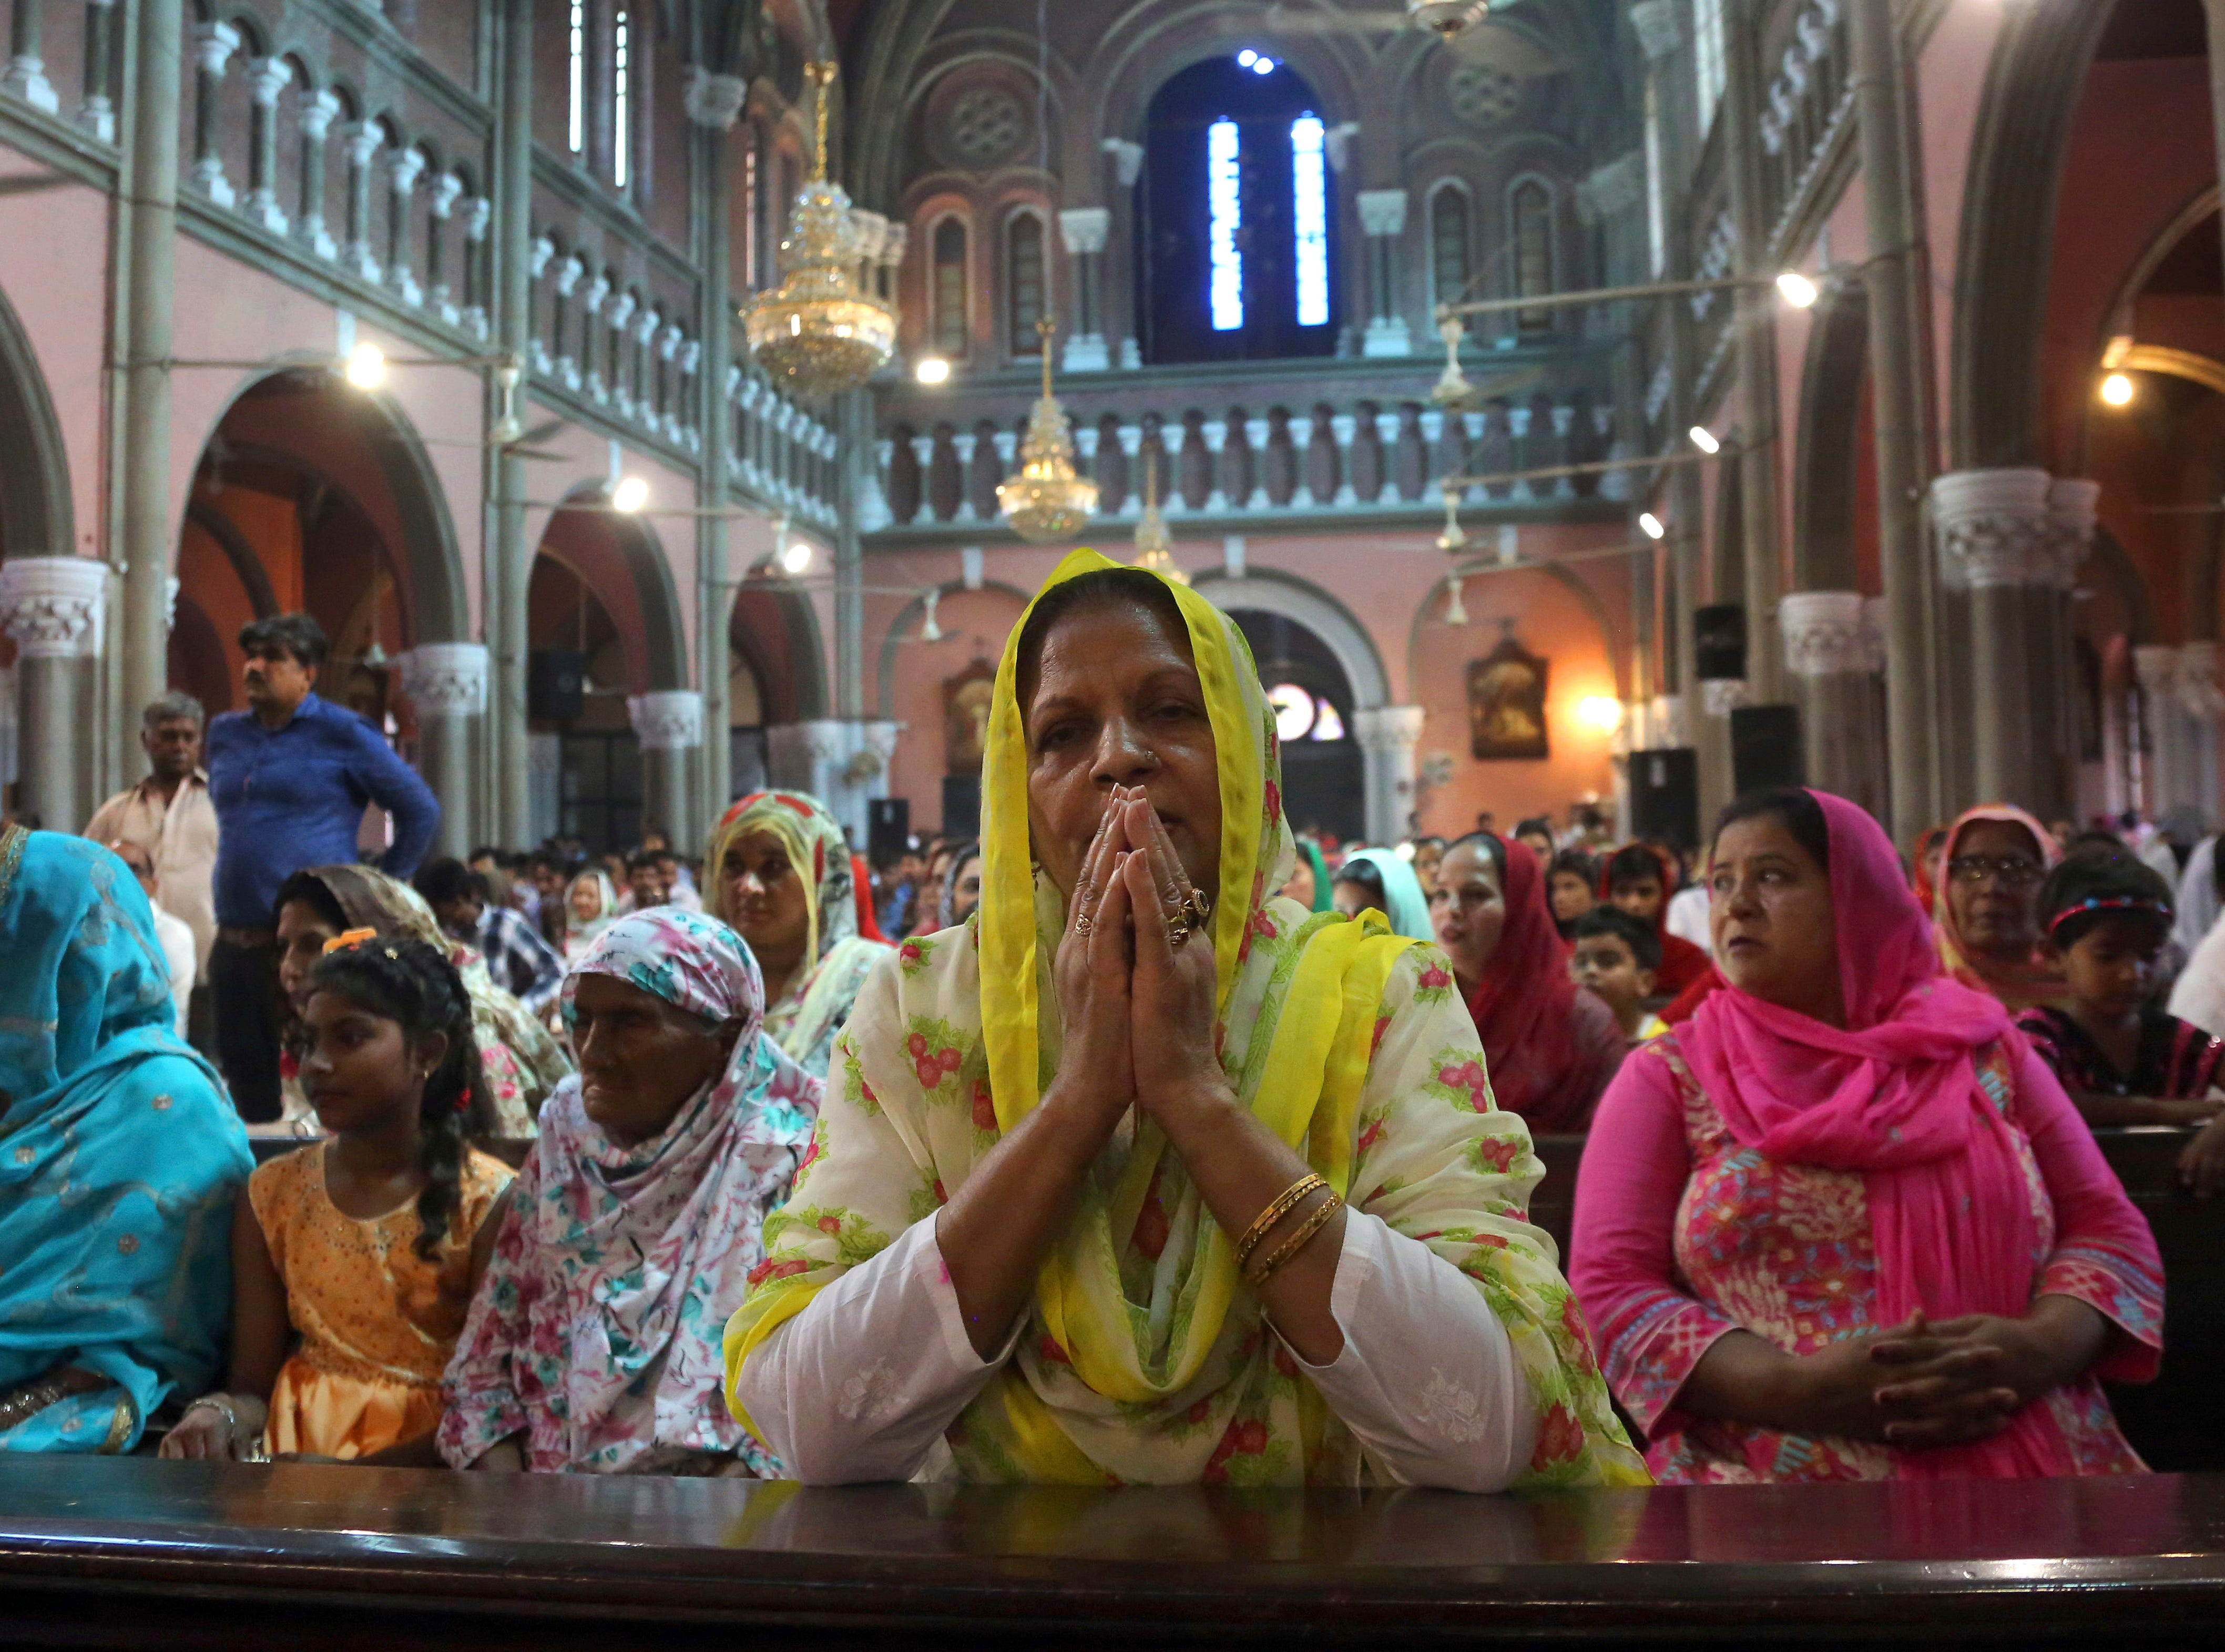 A Pakistani Christian woman prays during Easter mass at Catholic Sacred Heart Cathedral in Lahore, Pakistan on April 21, 2019.